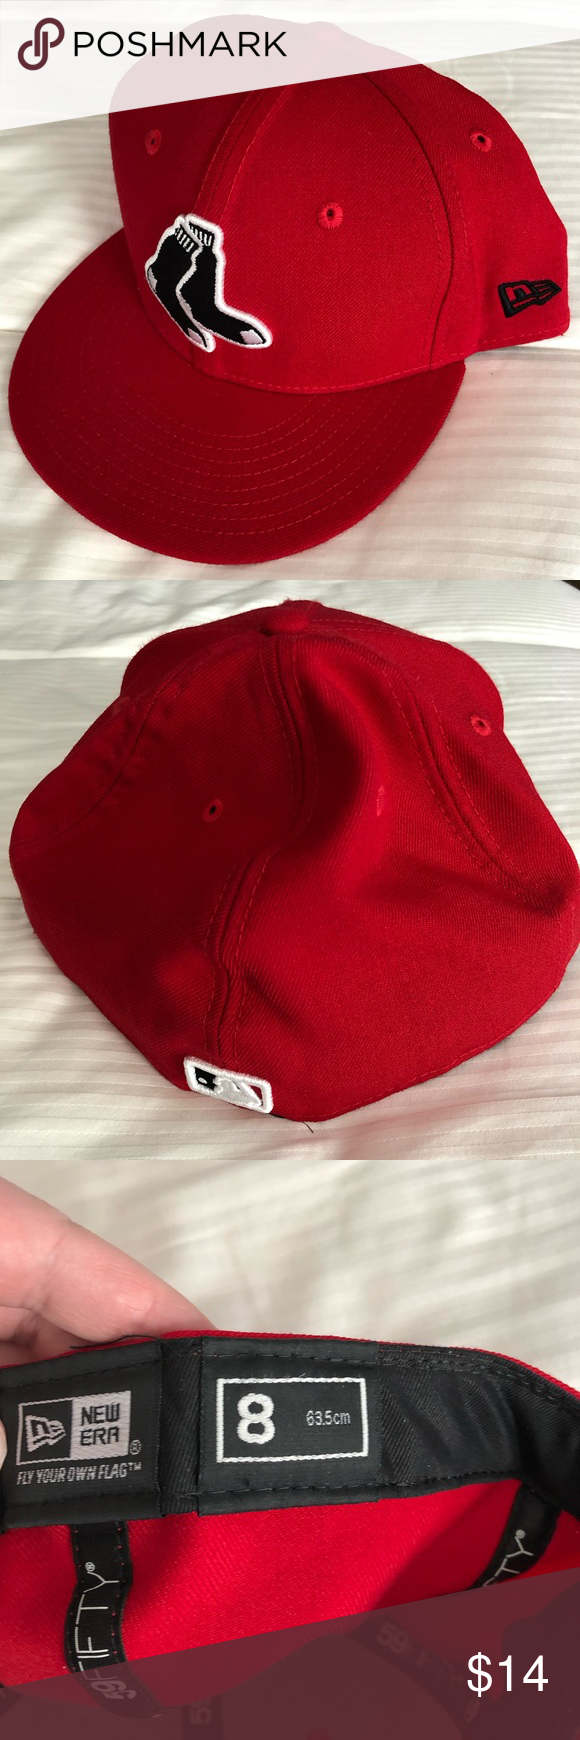 Boston Red Sox New Era 59fifty Fitted Hat Fitted Hats New Era 59fifty New Era